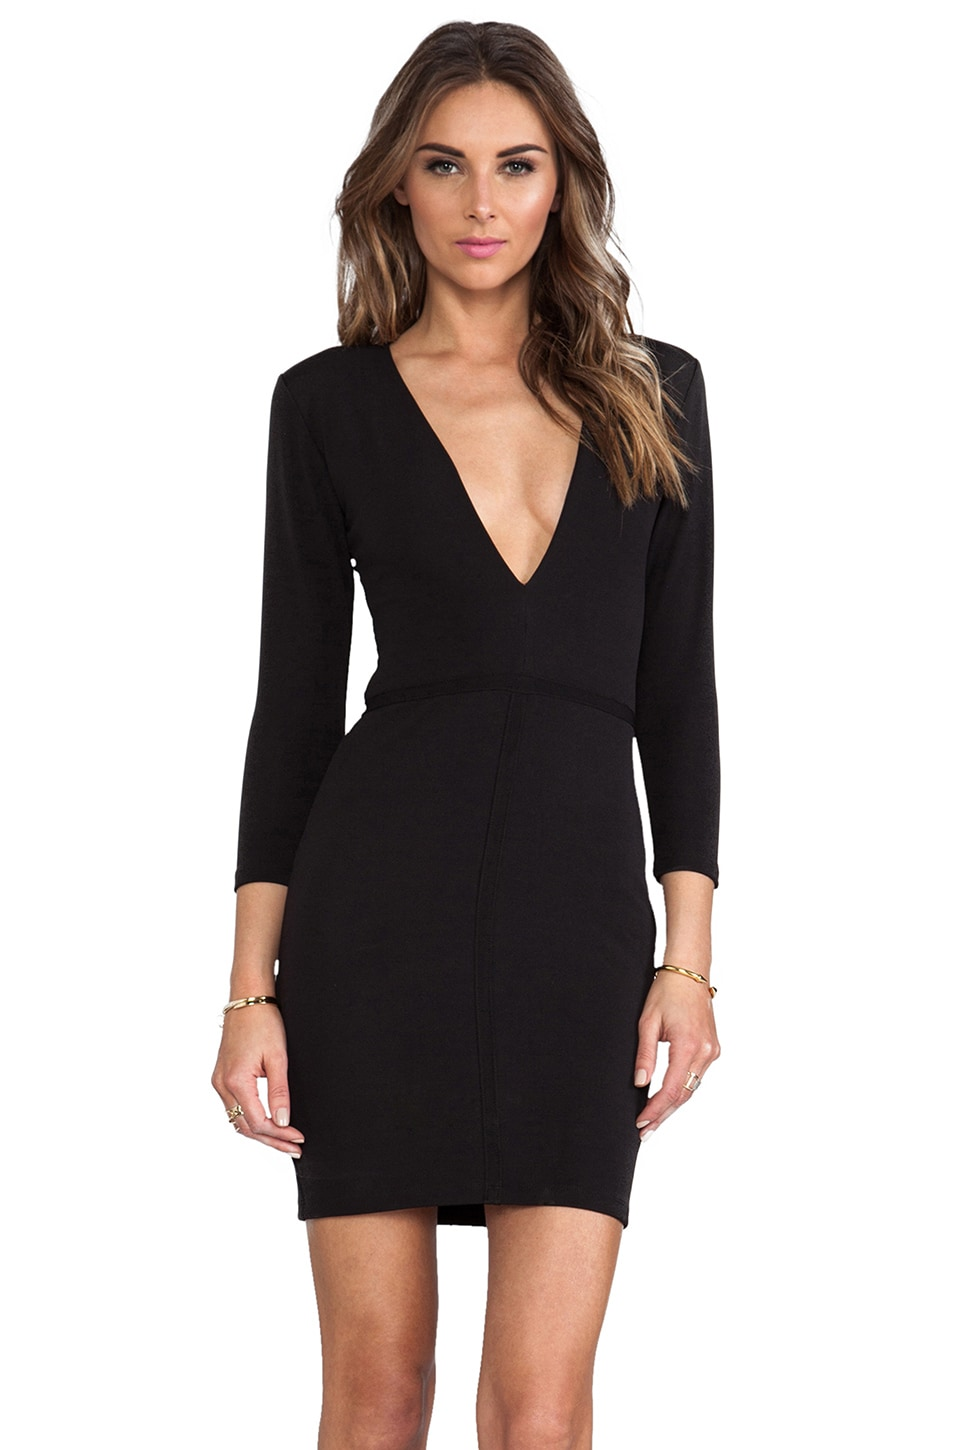 BEC&BRIDGE Imperial Deep V Dress in Black